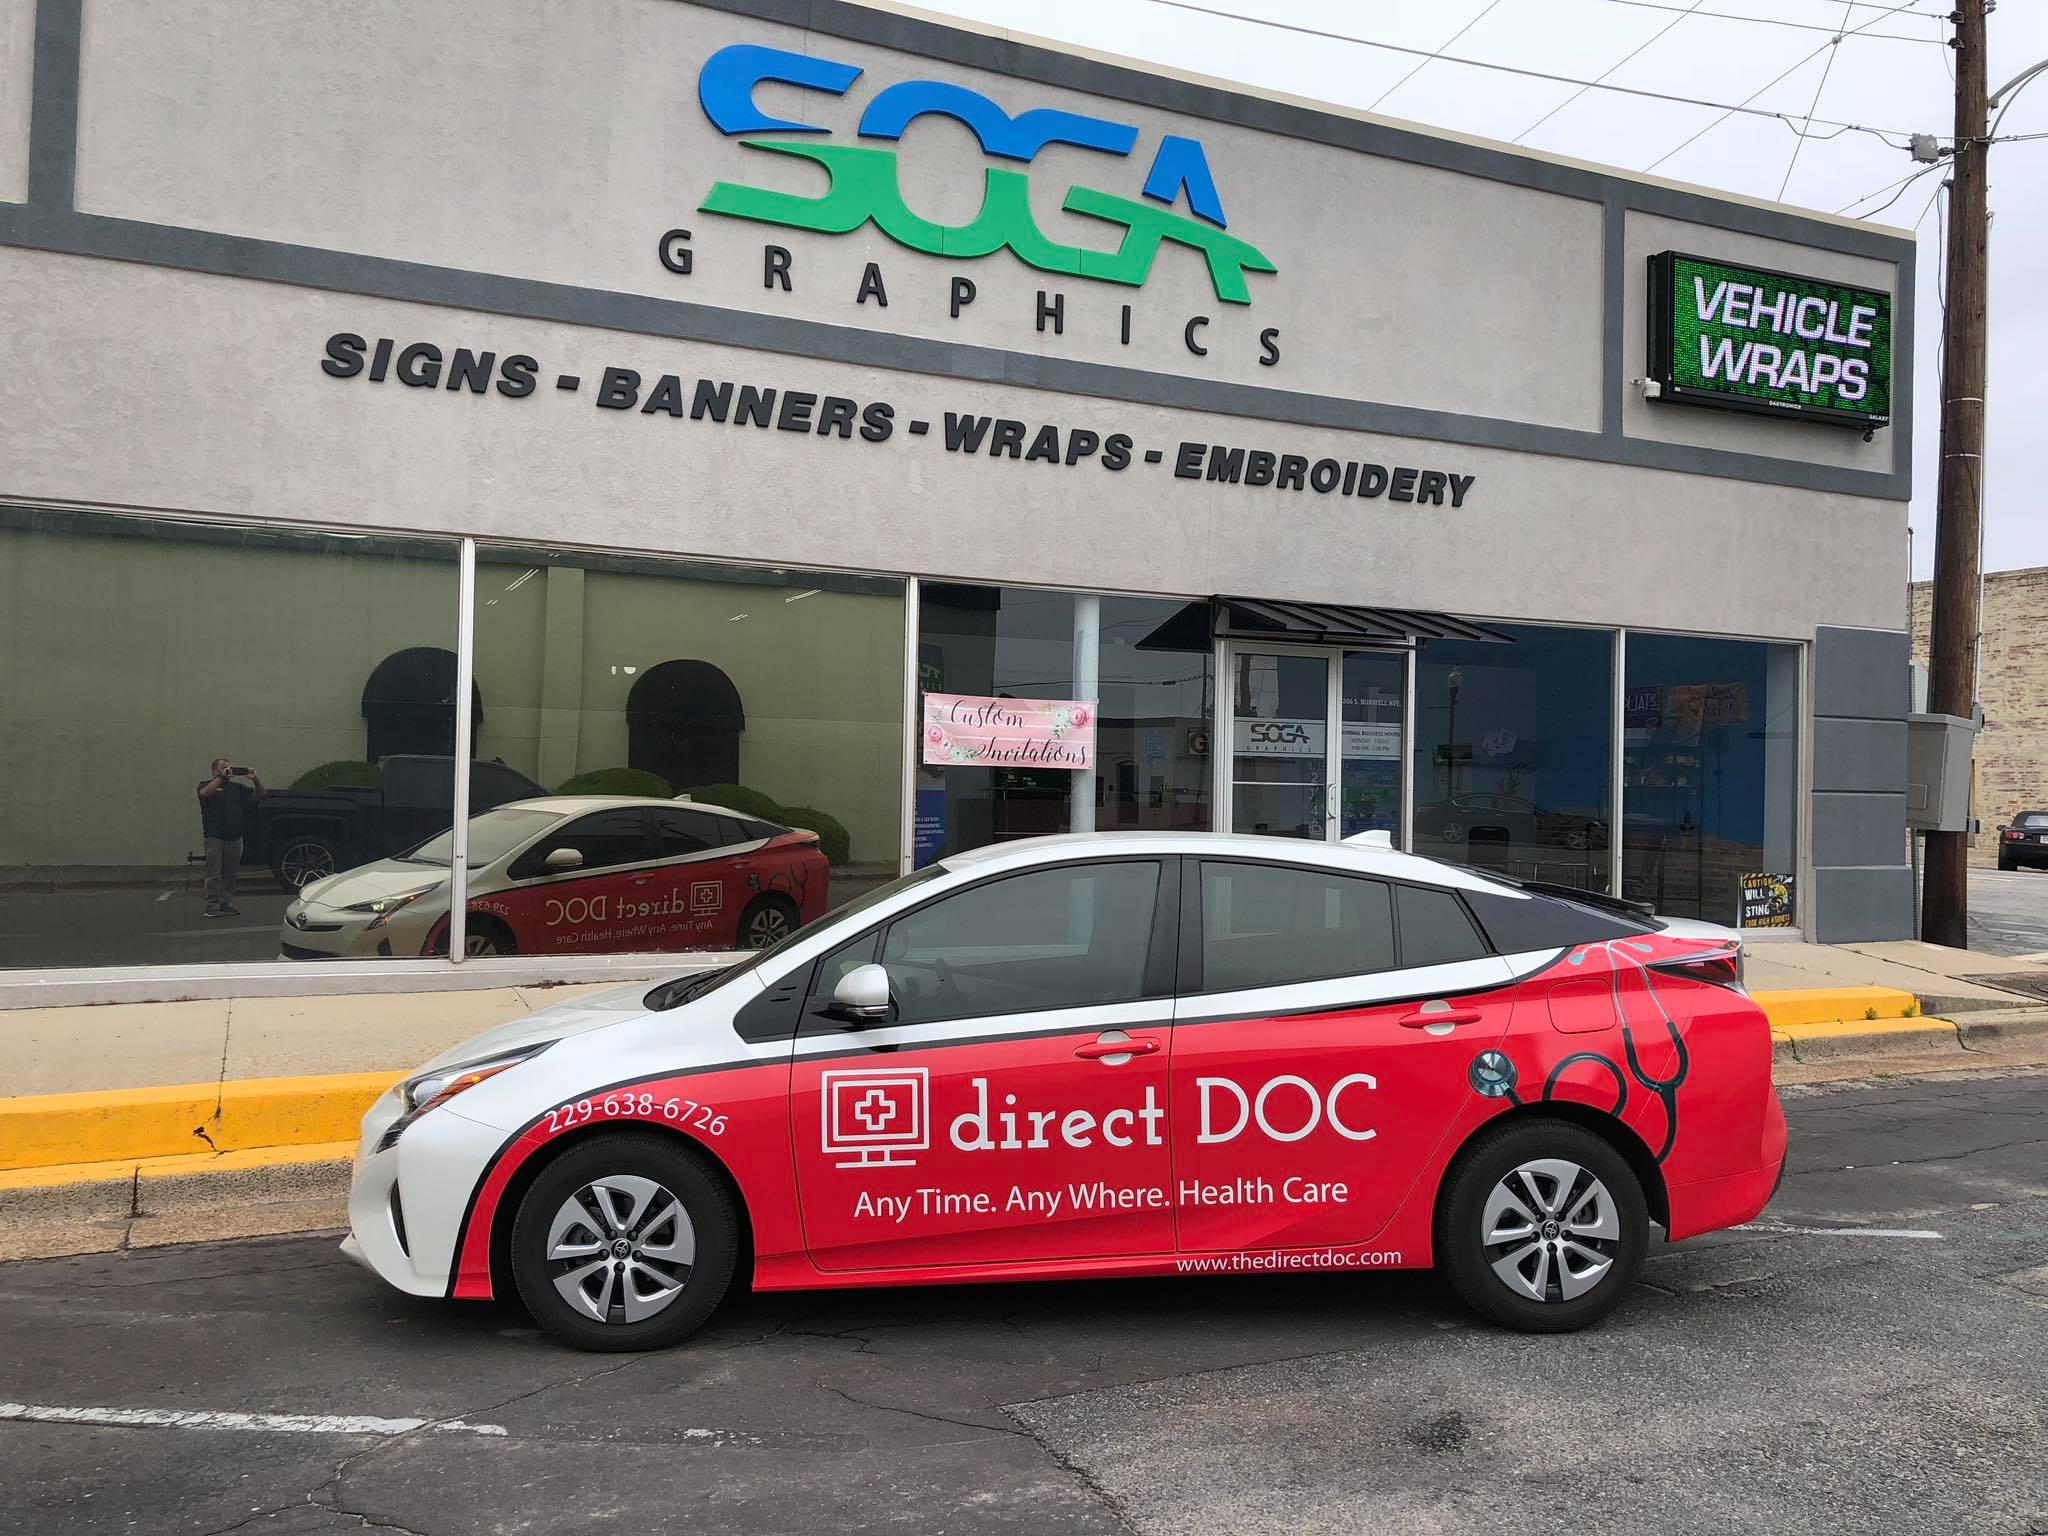 Direct Doc Vehicle Wrap